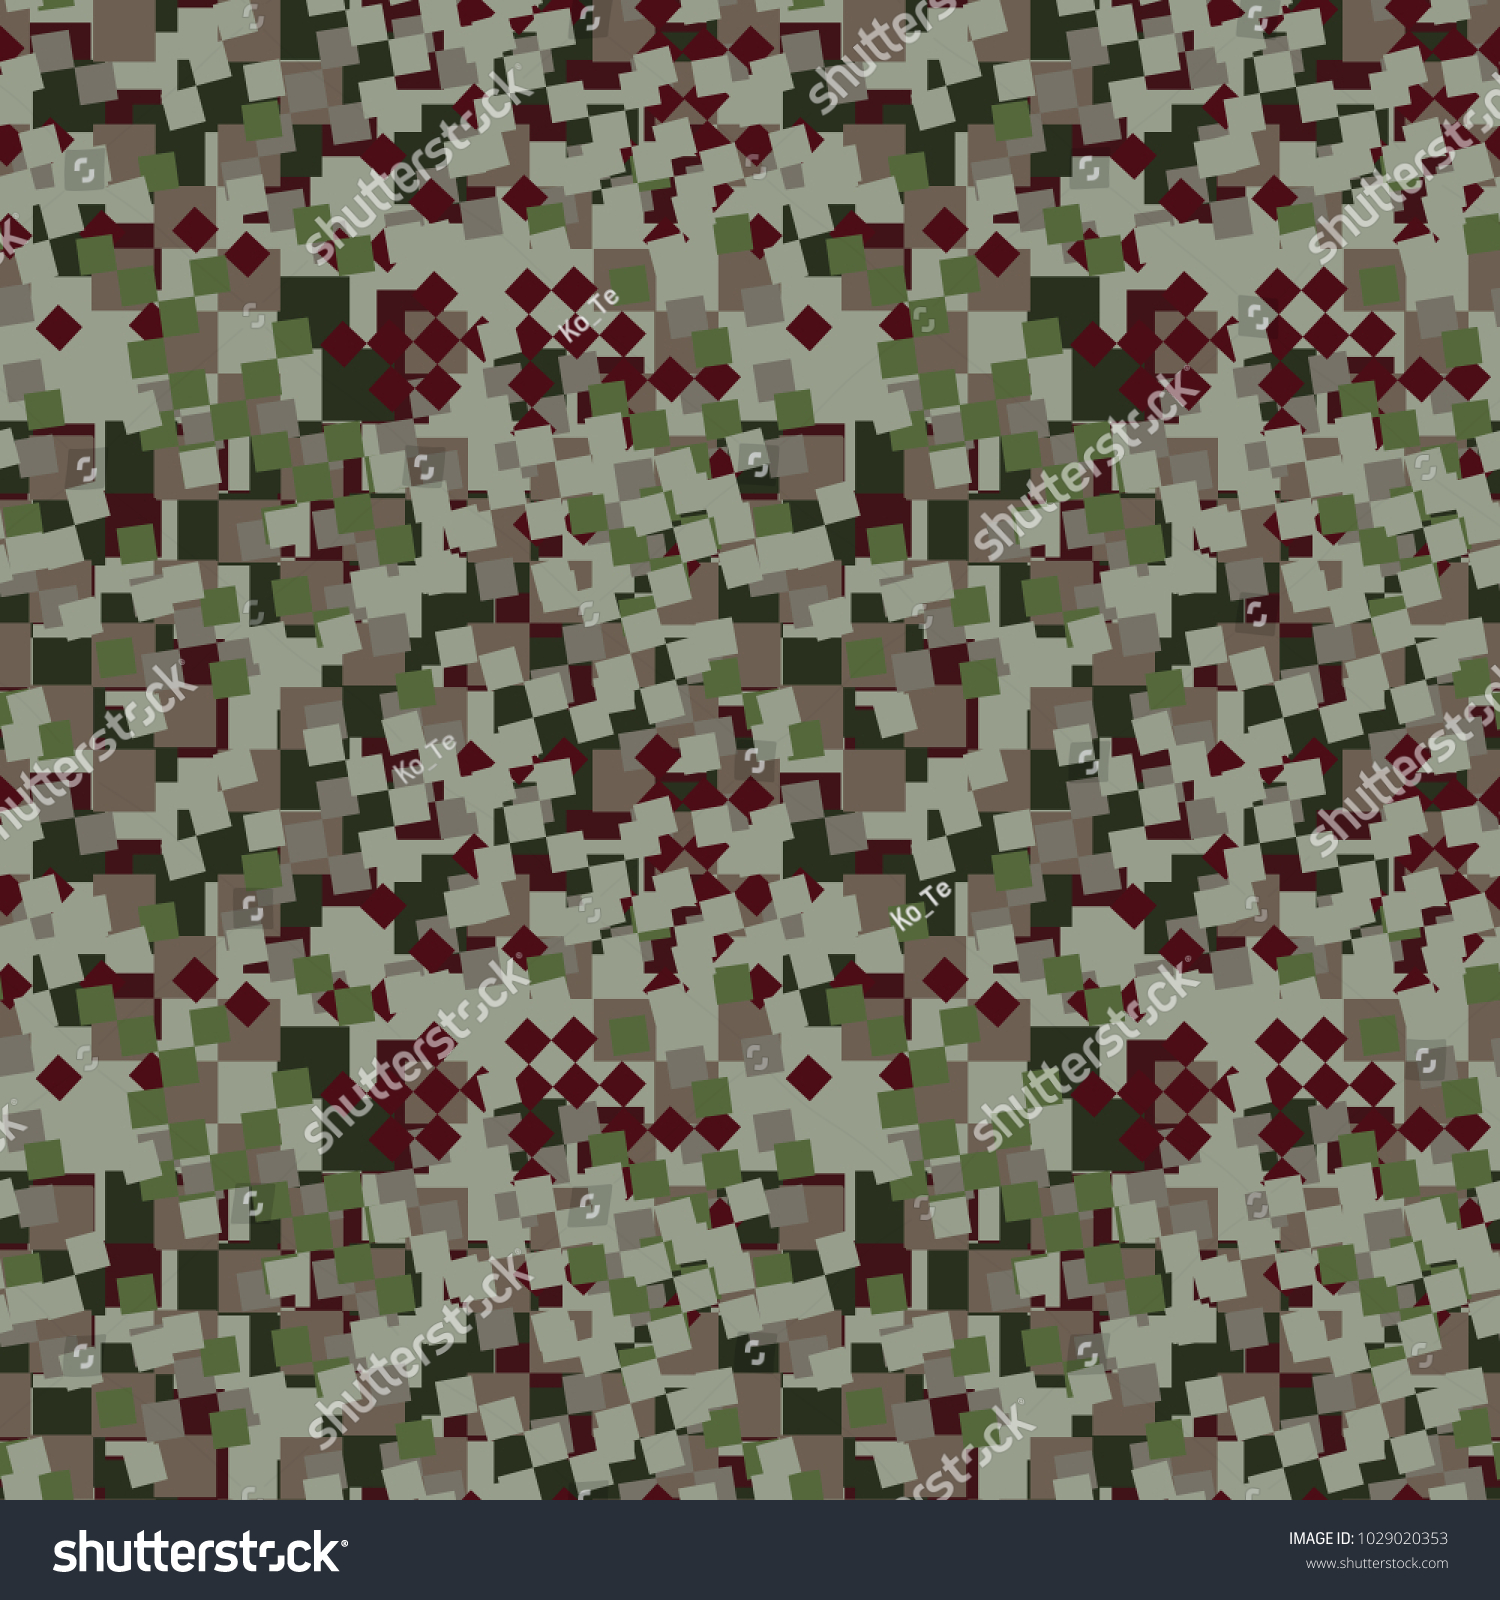 Light Green Red And Dark Digital Camouflage Is A Colorful Seamless Pixel Pattern That